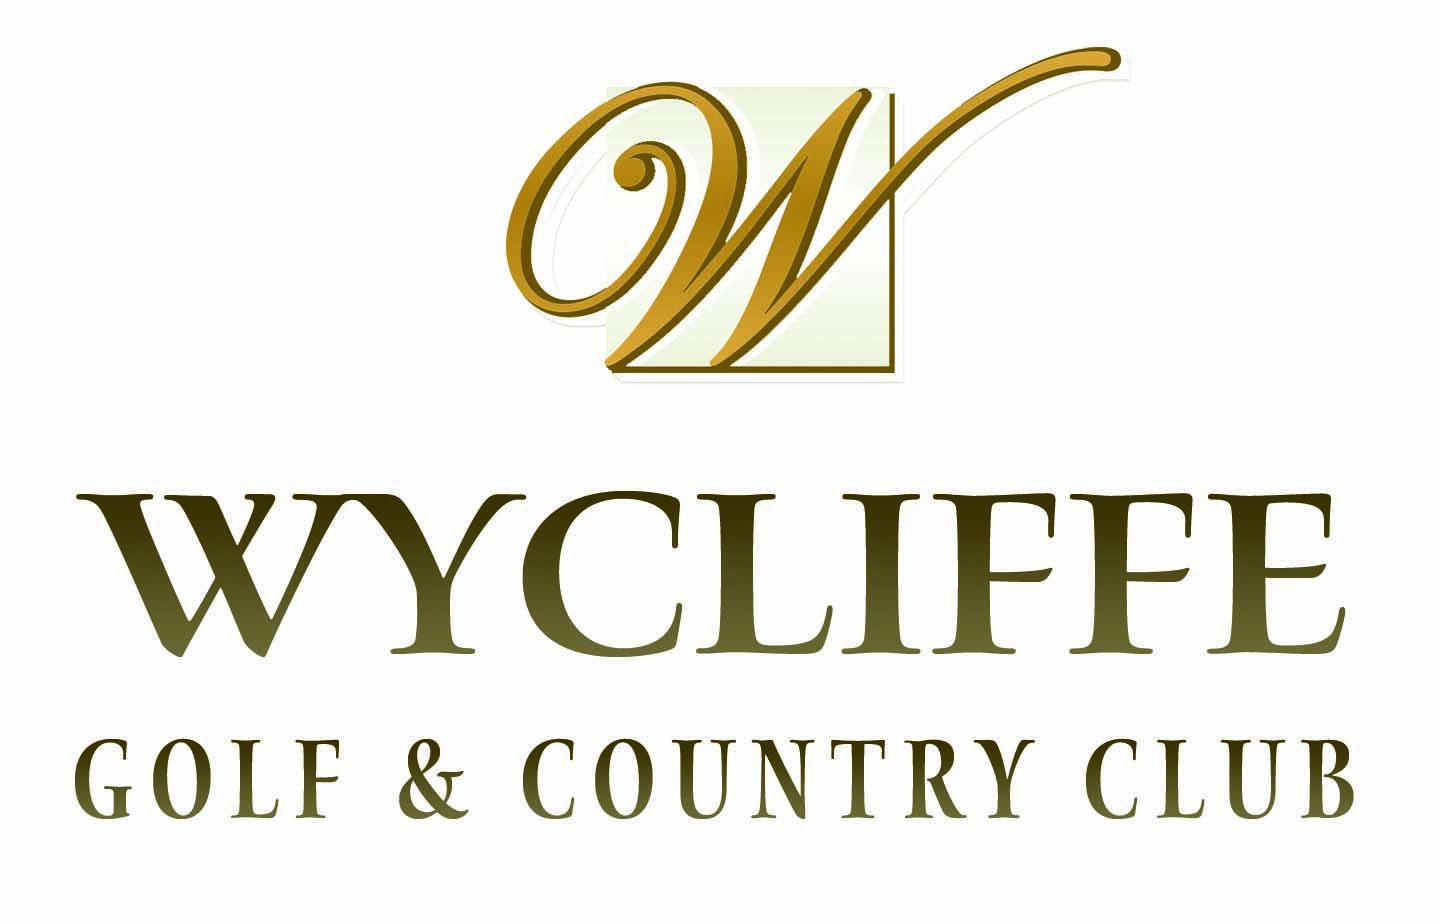 Wycliffe Golf Amp Country Club Sees Dramatic User Increase